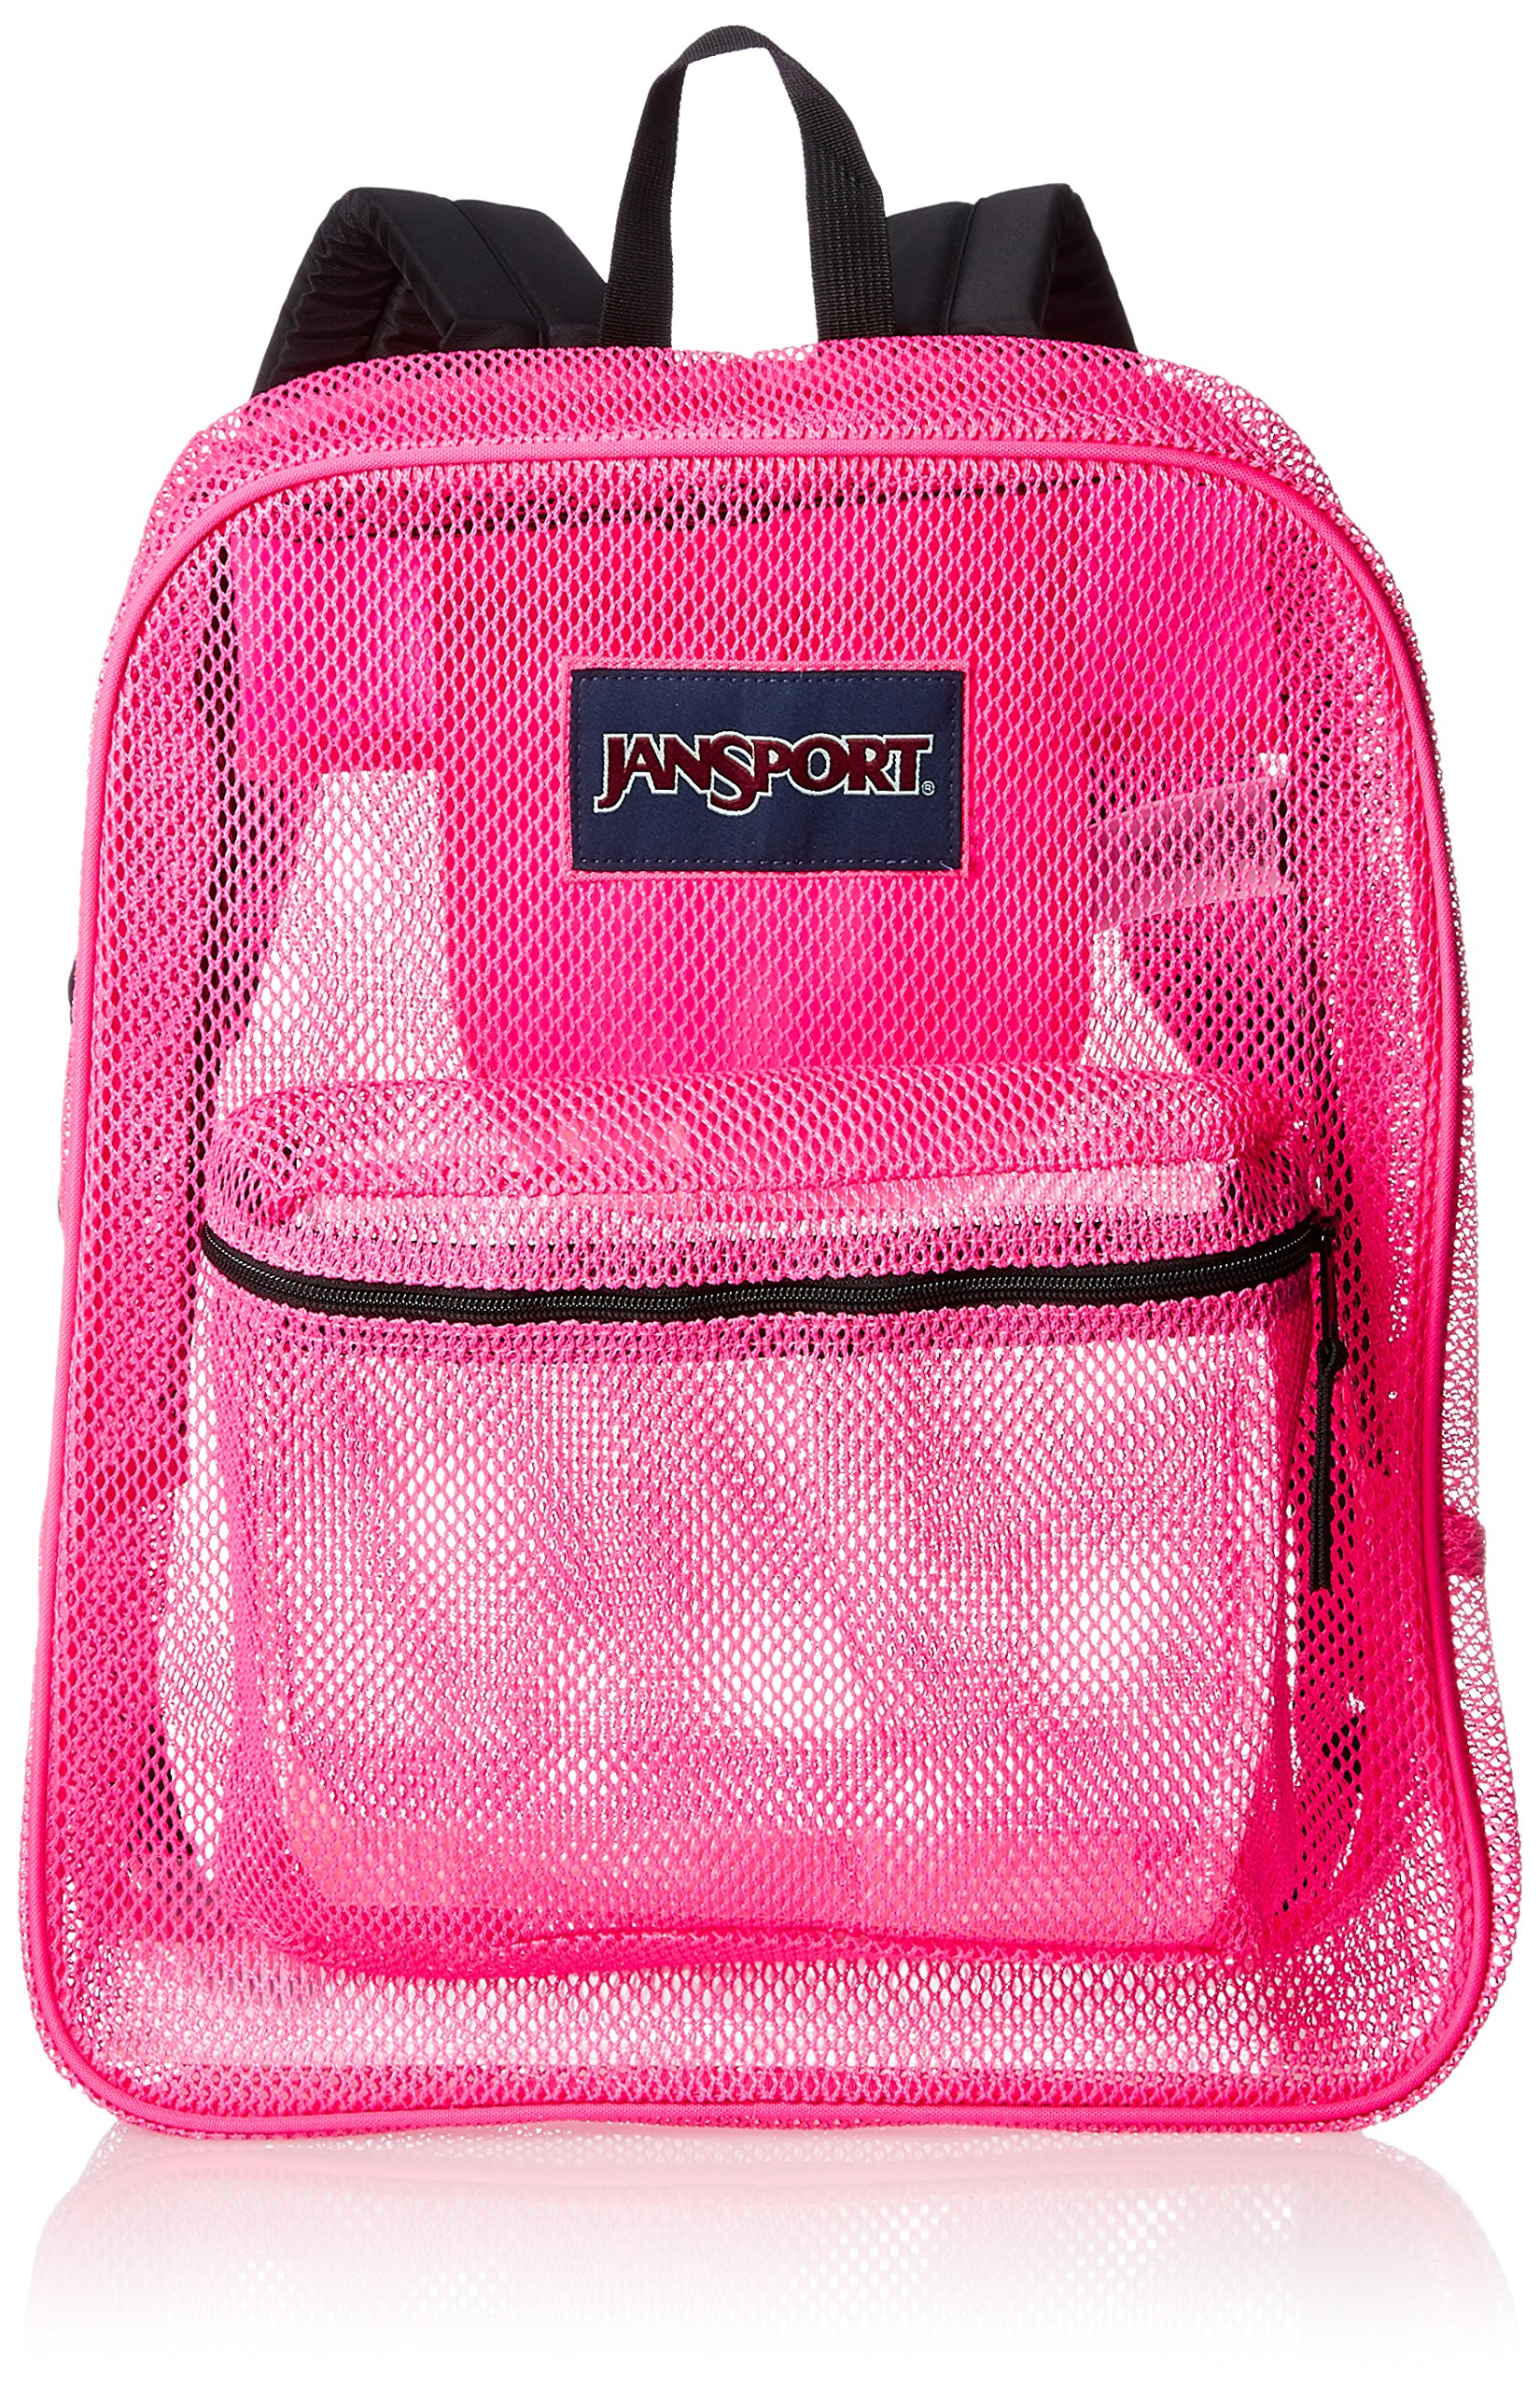 JanSport Mesh Pack- Discontinued Colors (Ultra Pink)